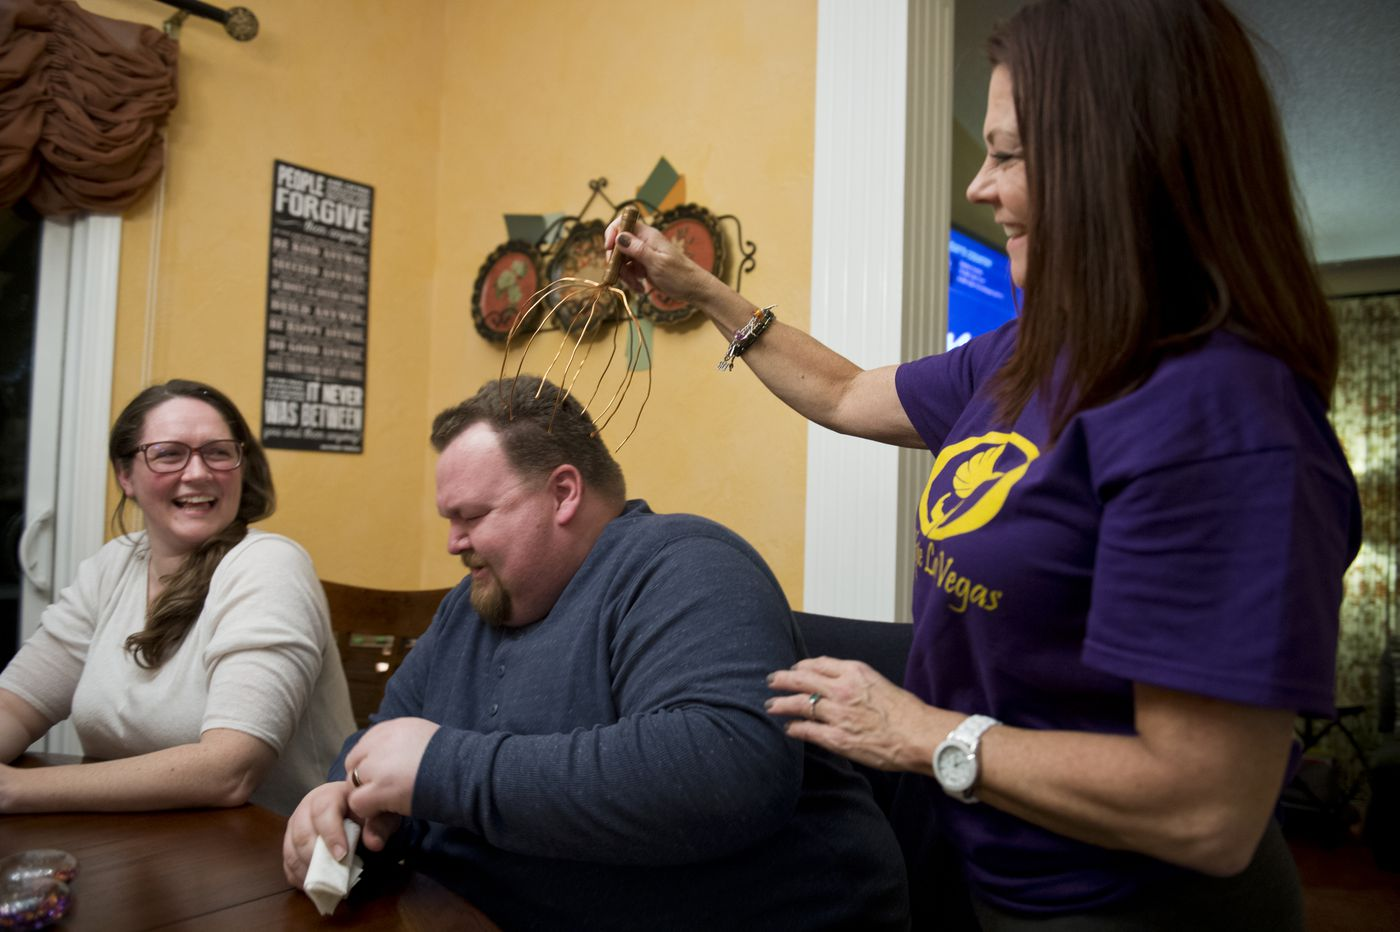 Erik Ross flinches as Jaimie Farrell uses a scalp massaging device on him during a dinner gathering on Dec. 1. Ross' wife, Chrissy Braniger, is at left. (Marc Lester / ADN)